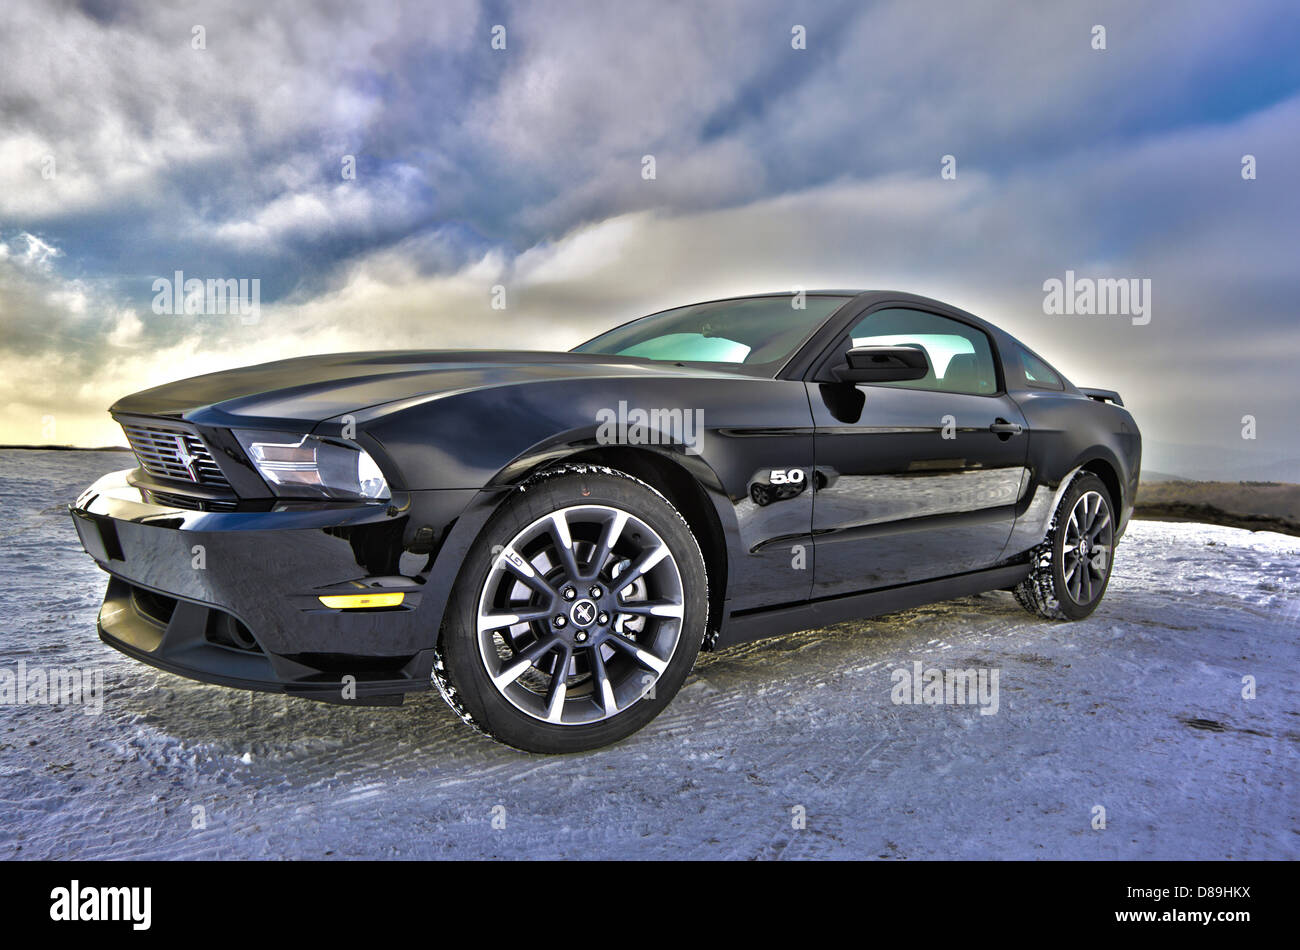 Ford Mustang auto músculo us-car sport coupe Imagen De Stock